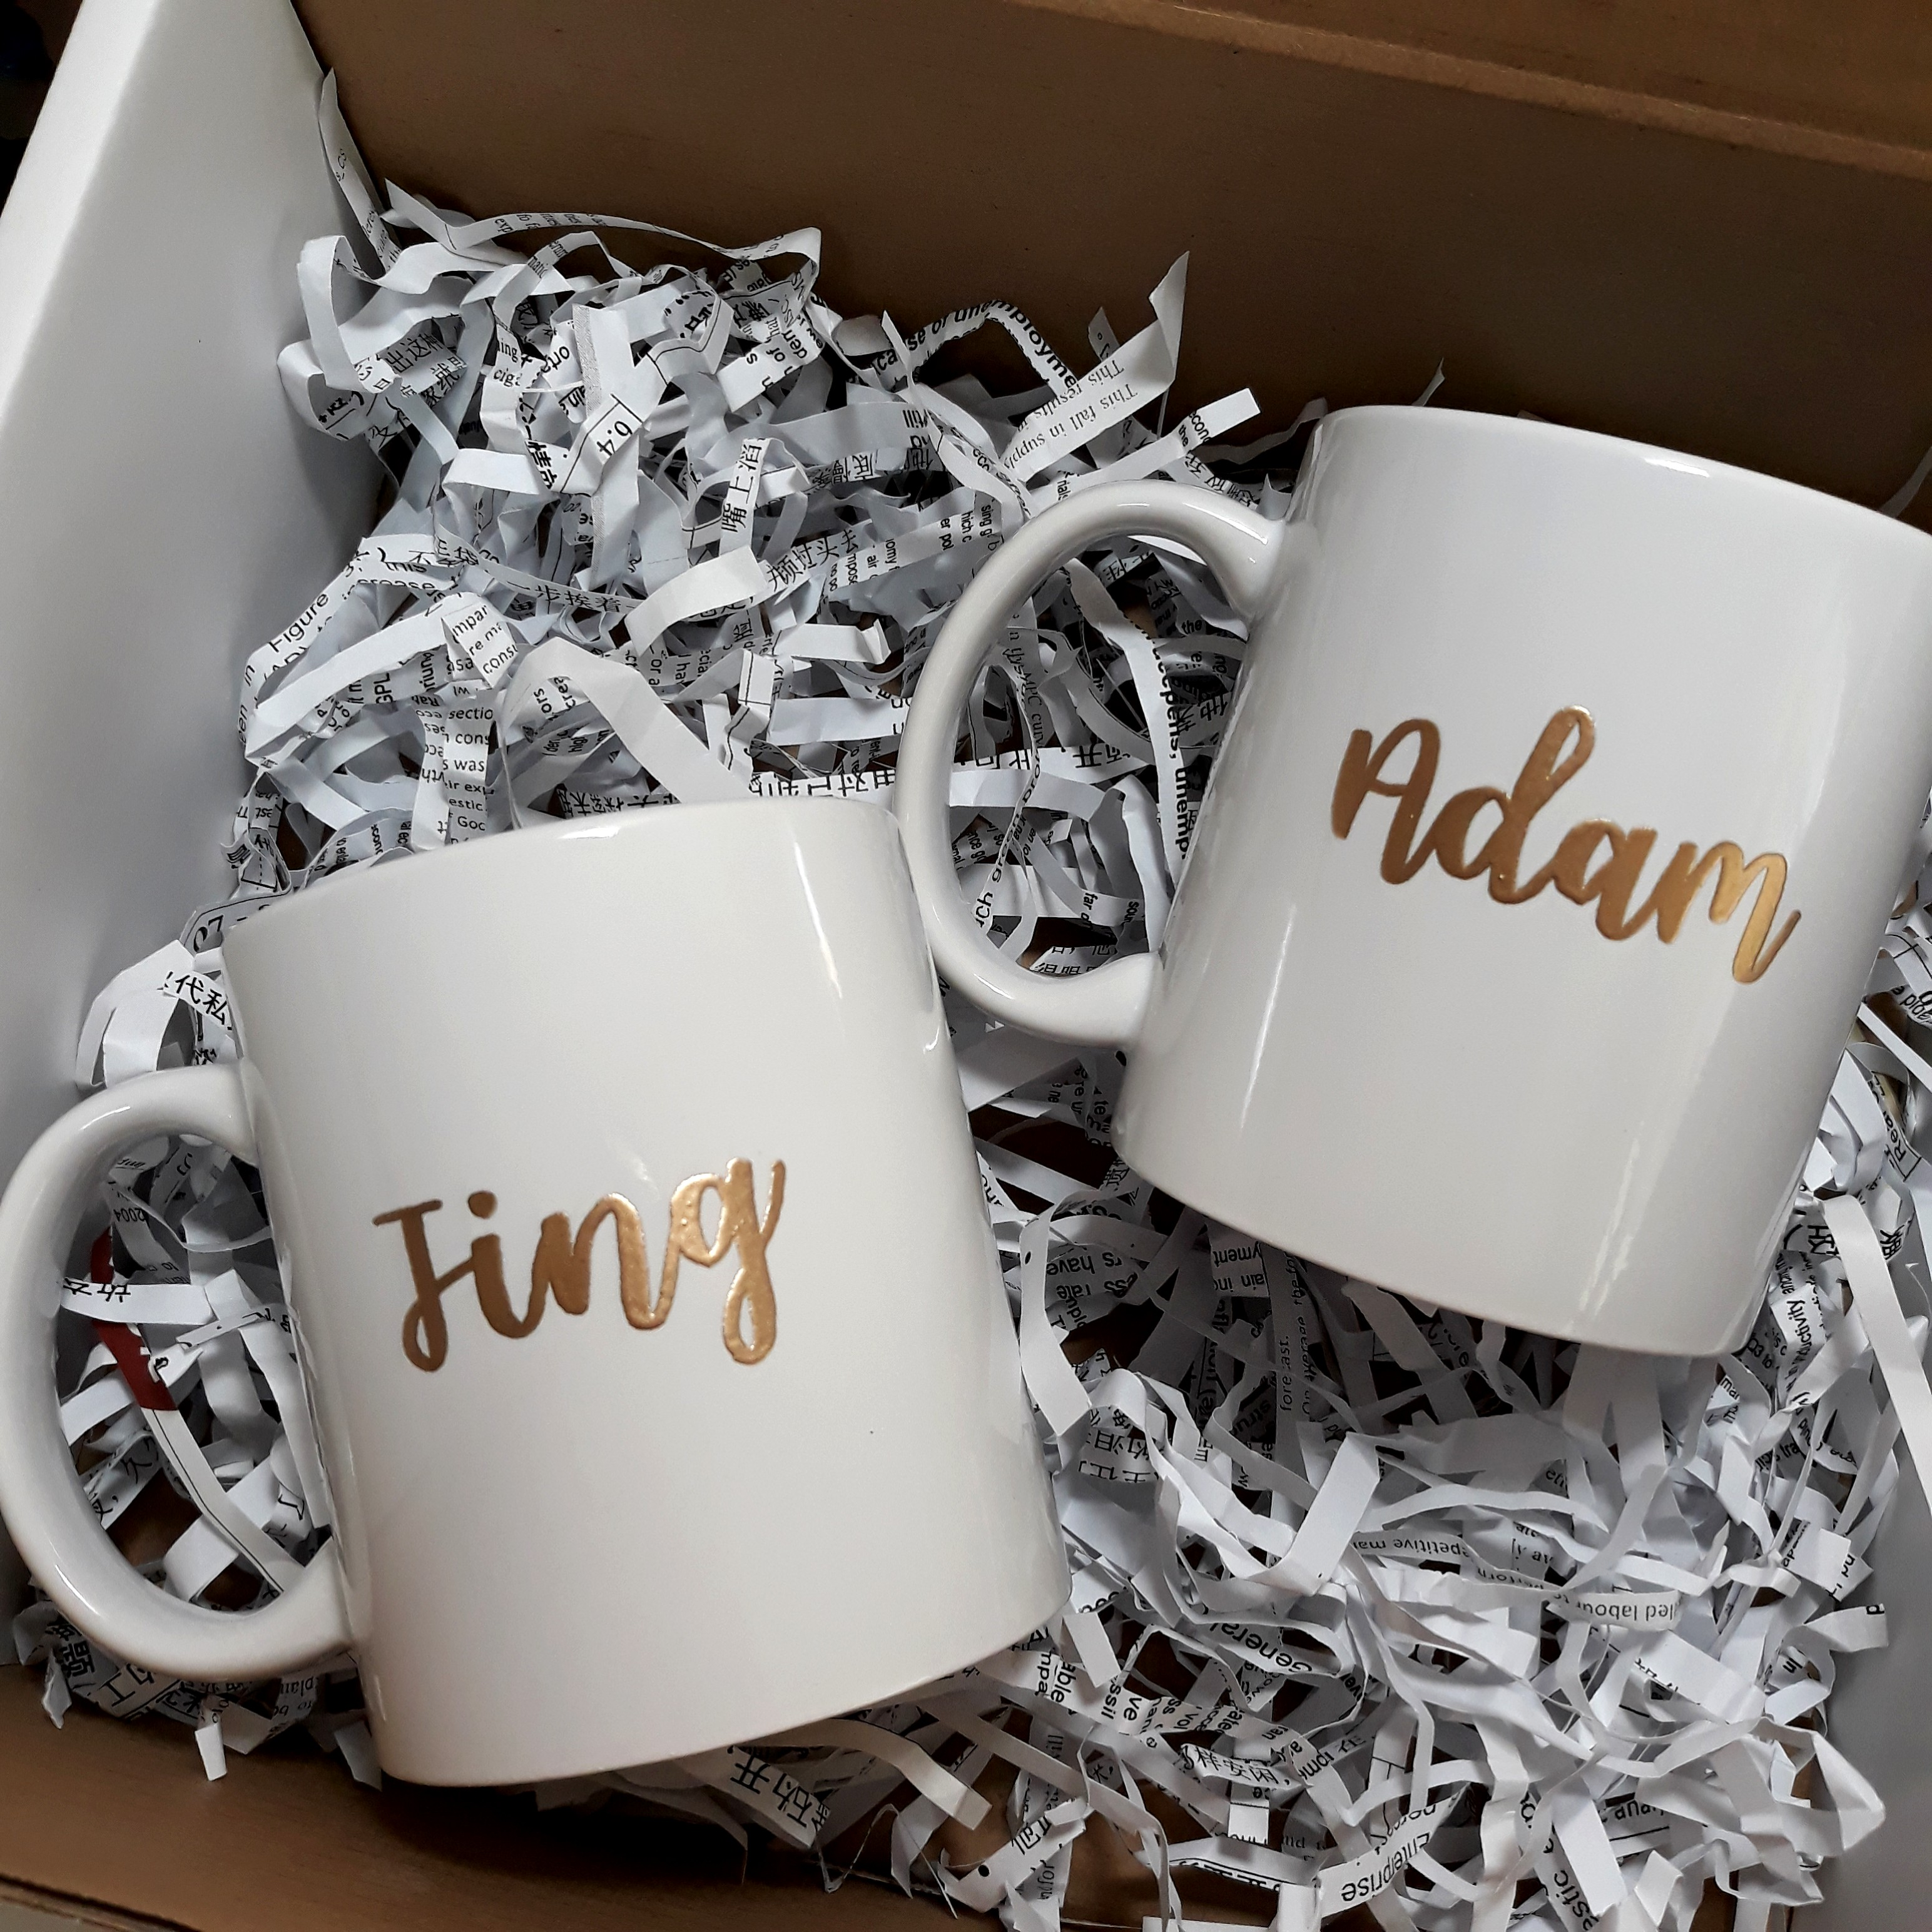 Personalised Cups Customised Mugs Cup Mug Personalized Customized